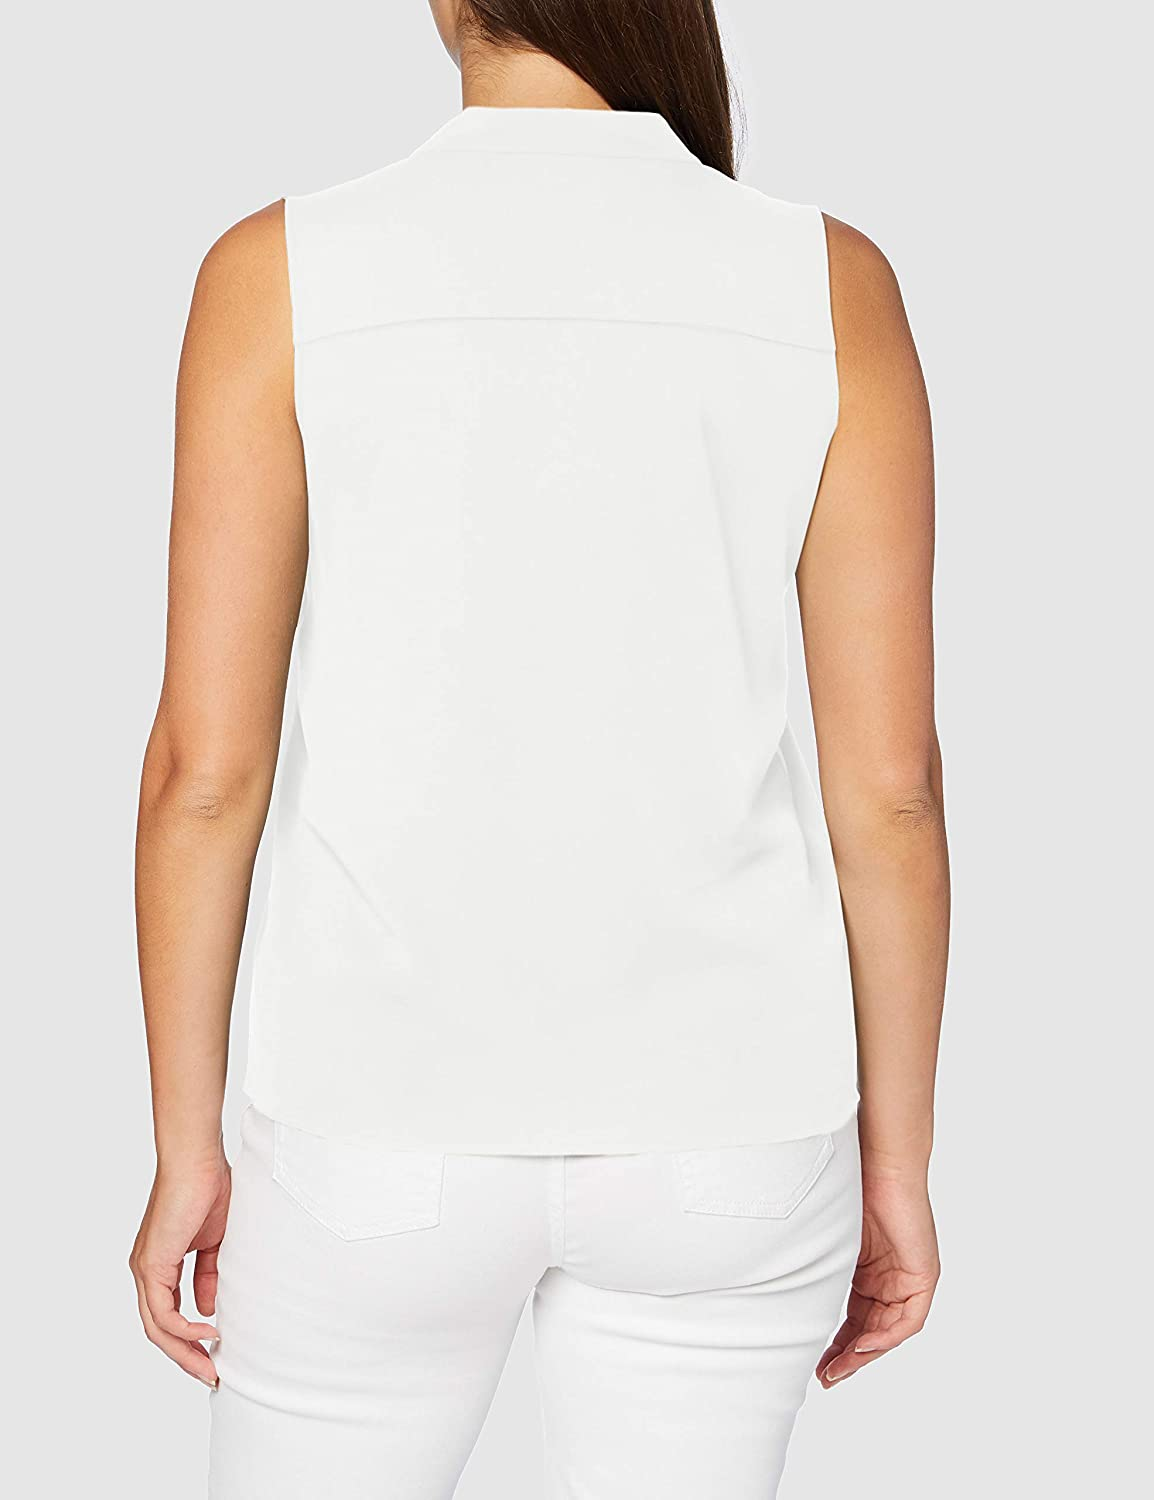 ESPRIT kollektion dam blus 110/Off White